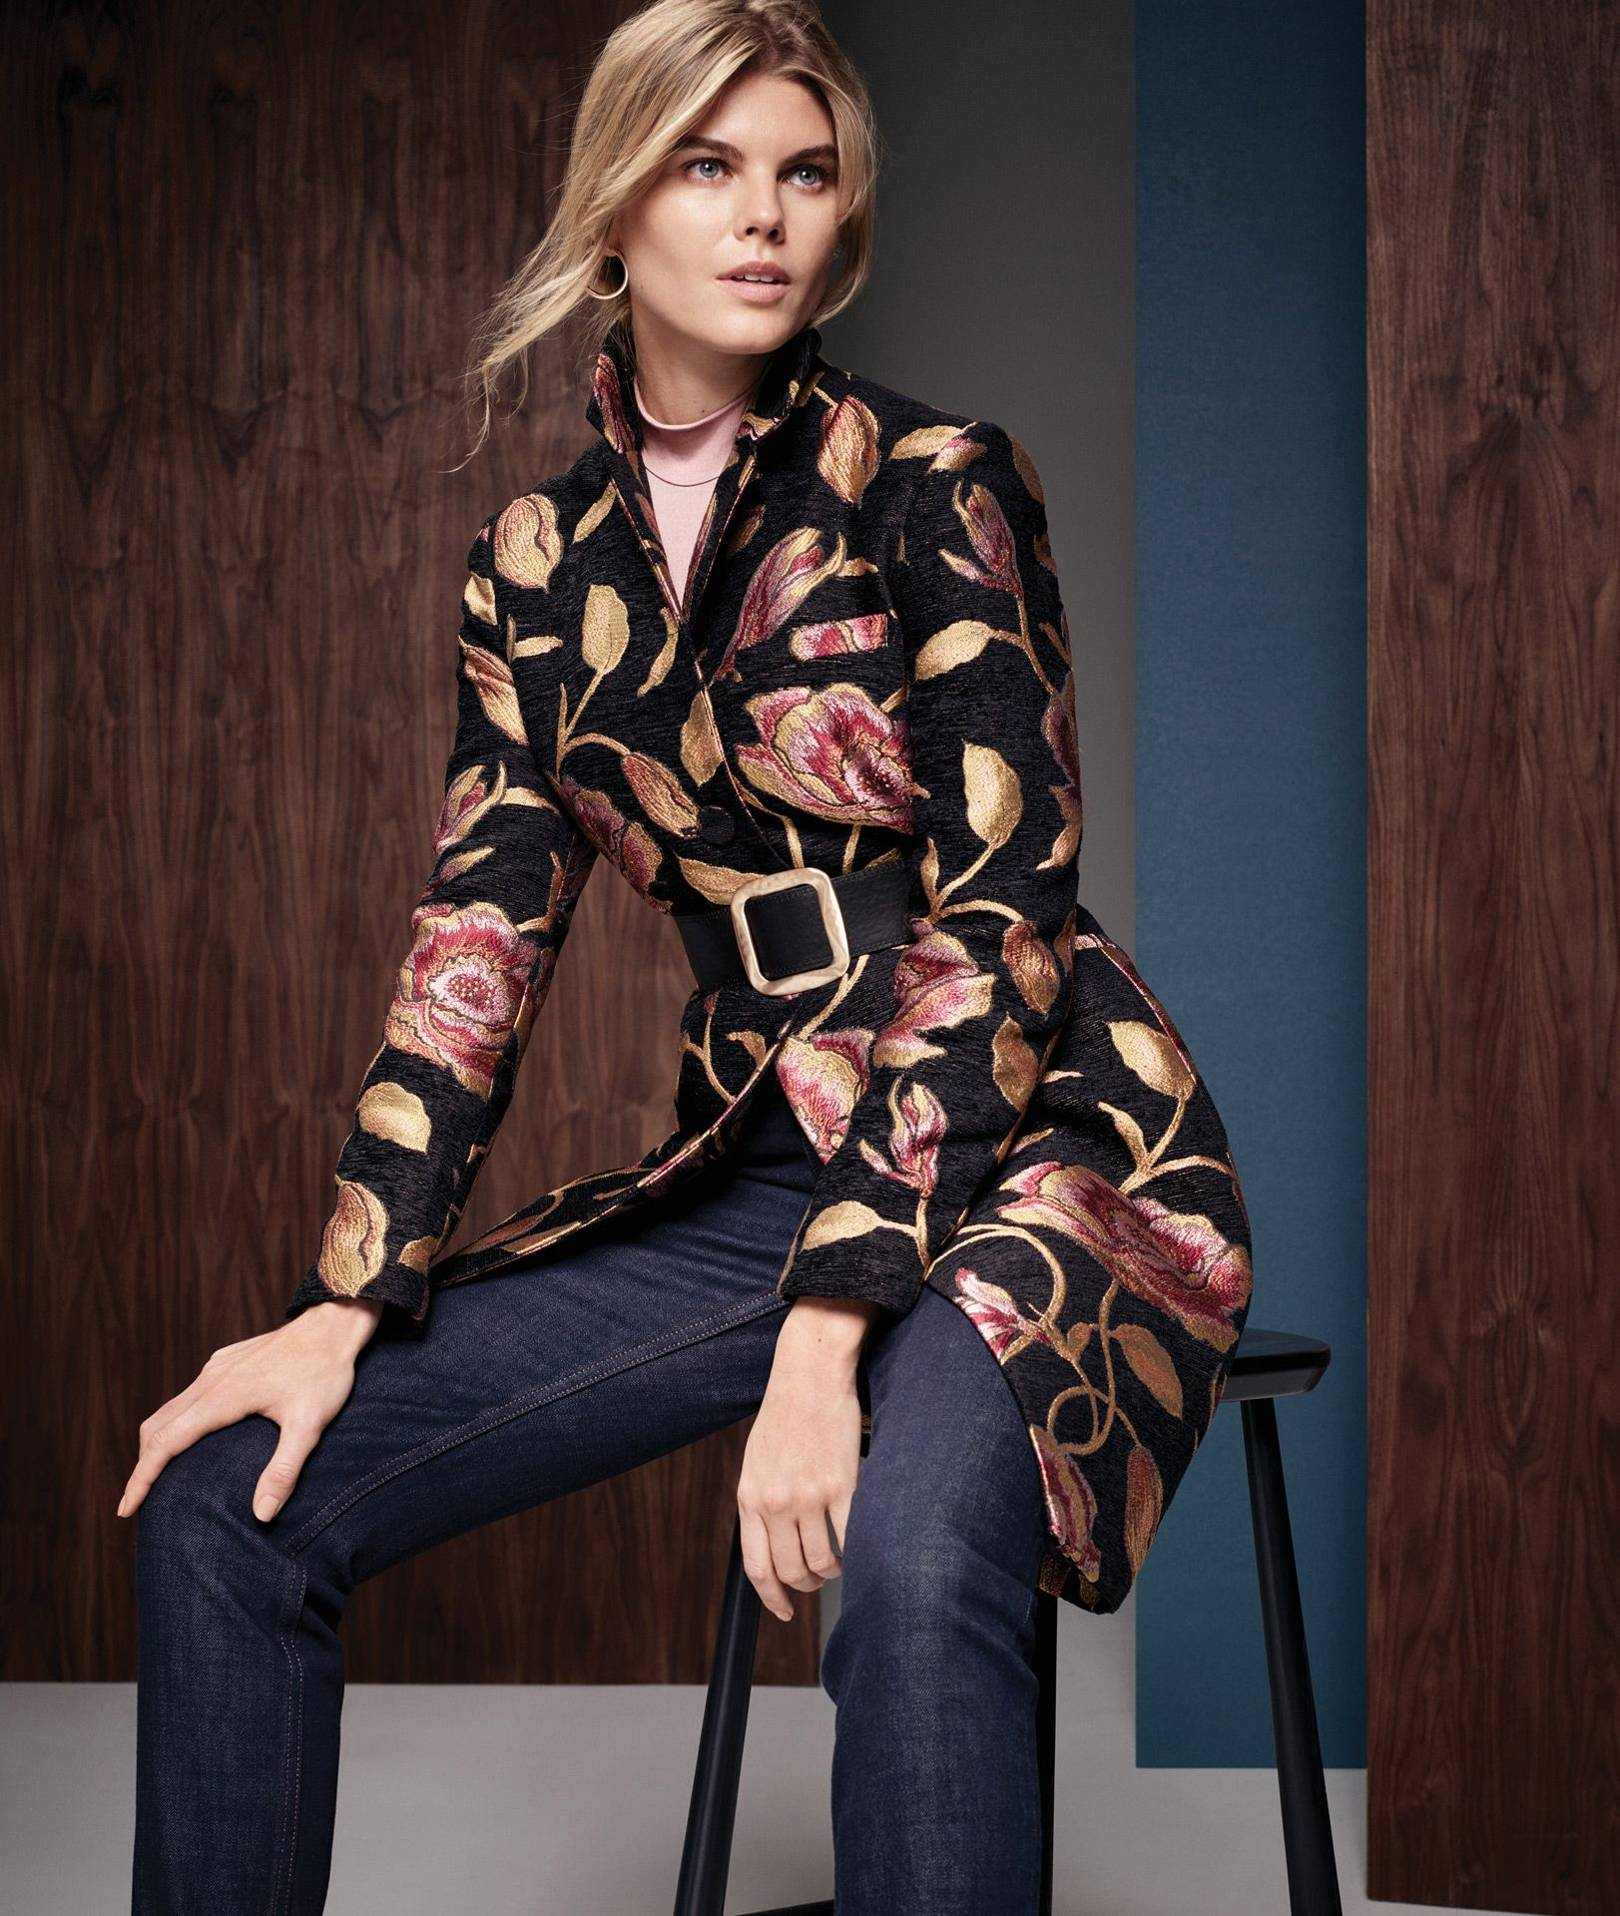 f6bca14f4cc4 Marks & Spencer Autumn Winter 2017 Collection Review | British Vogue